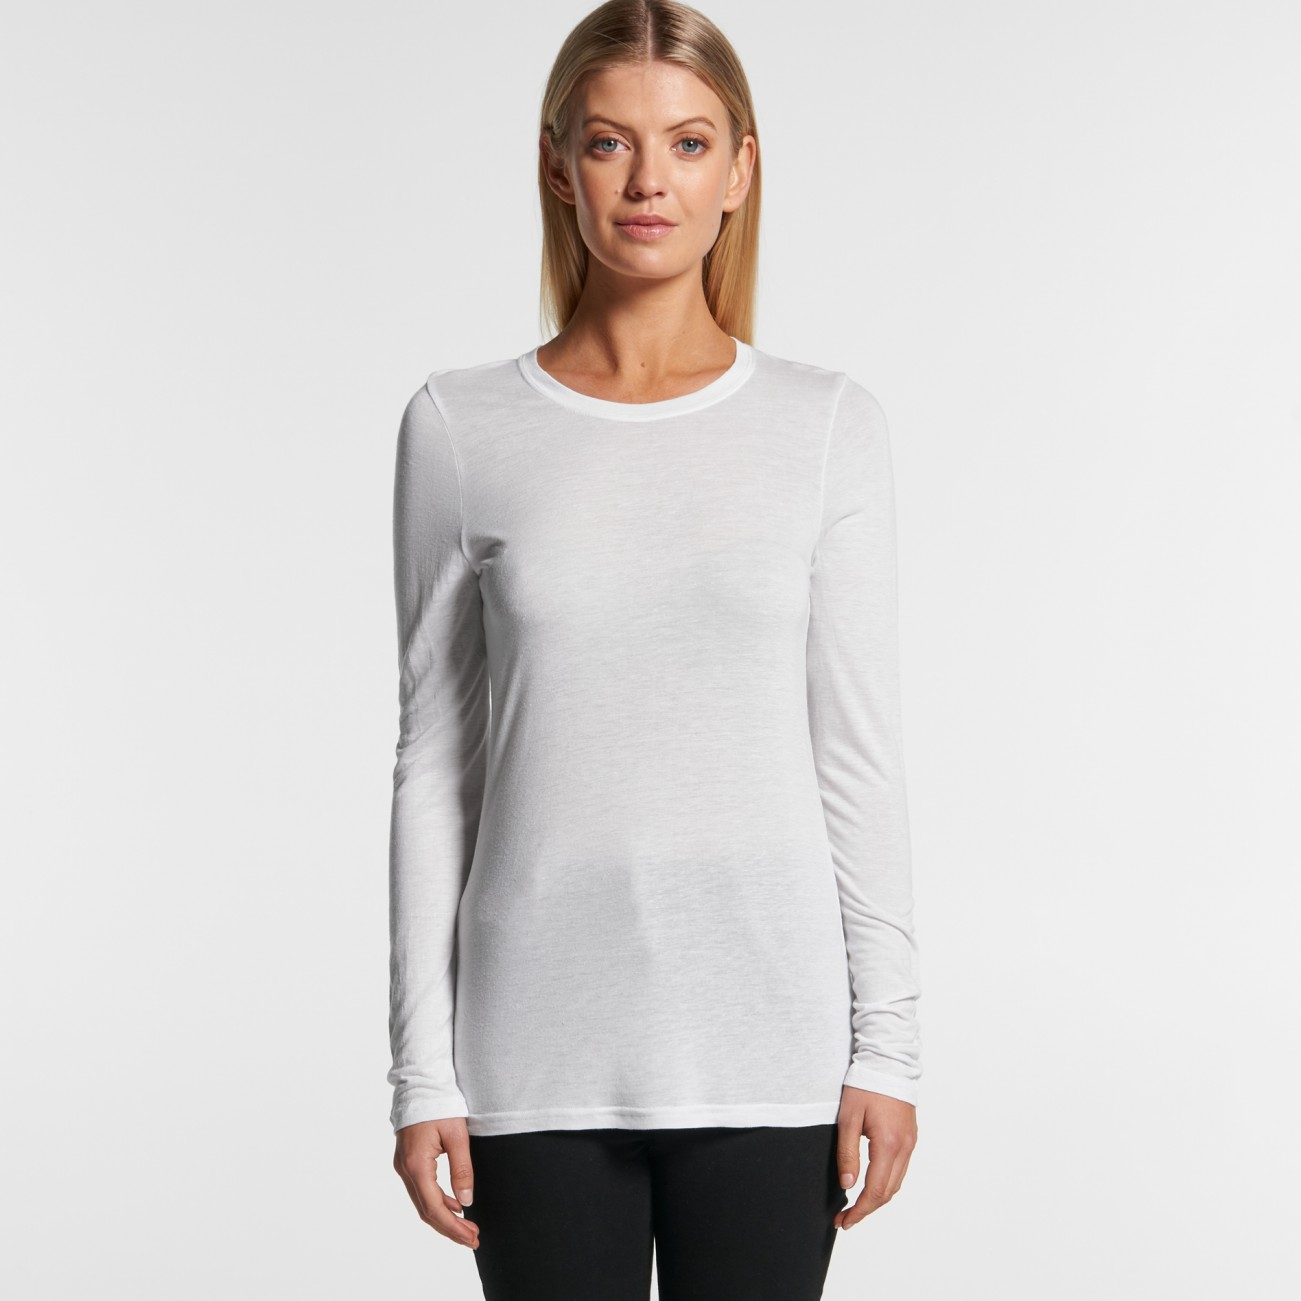 4026 WOMENS FINE LONG SLEEVE TEE